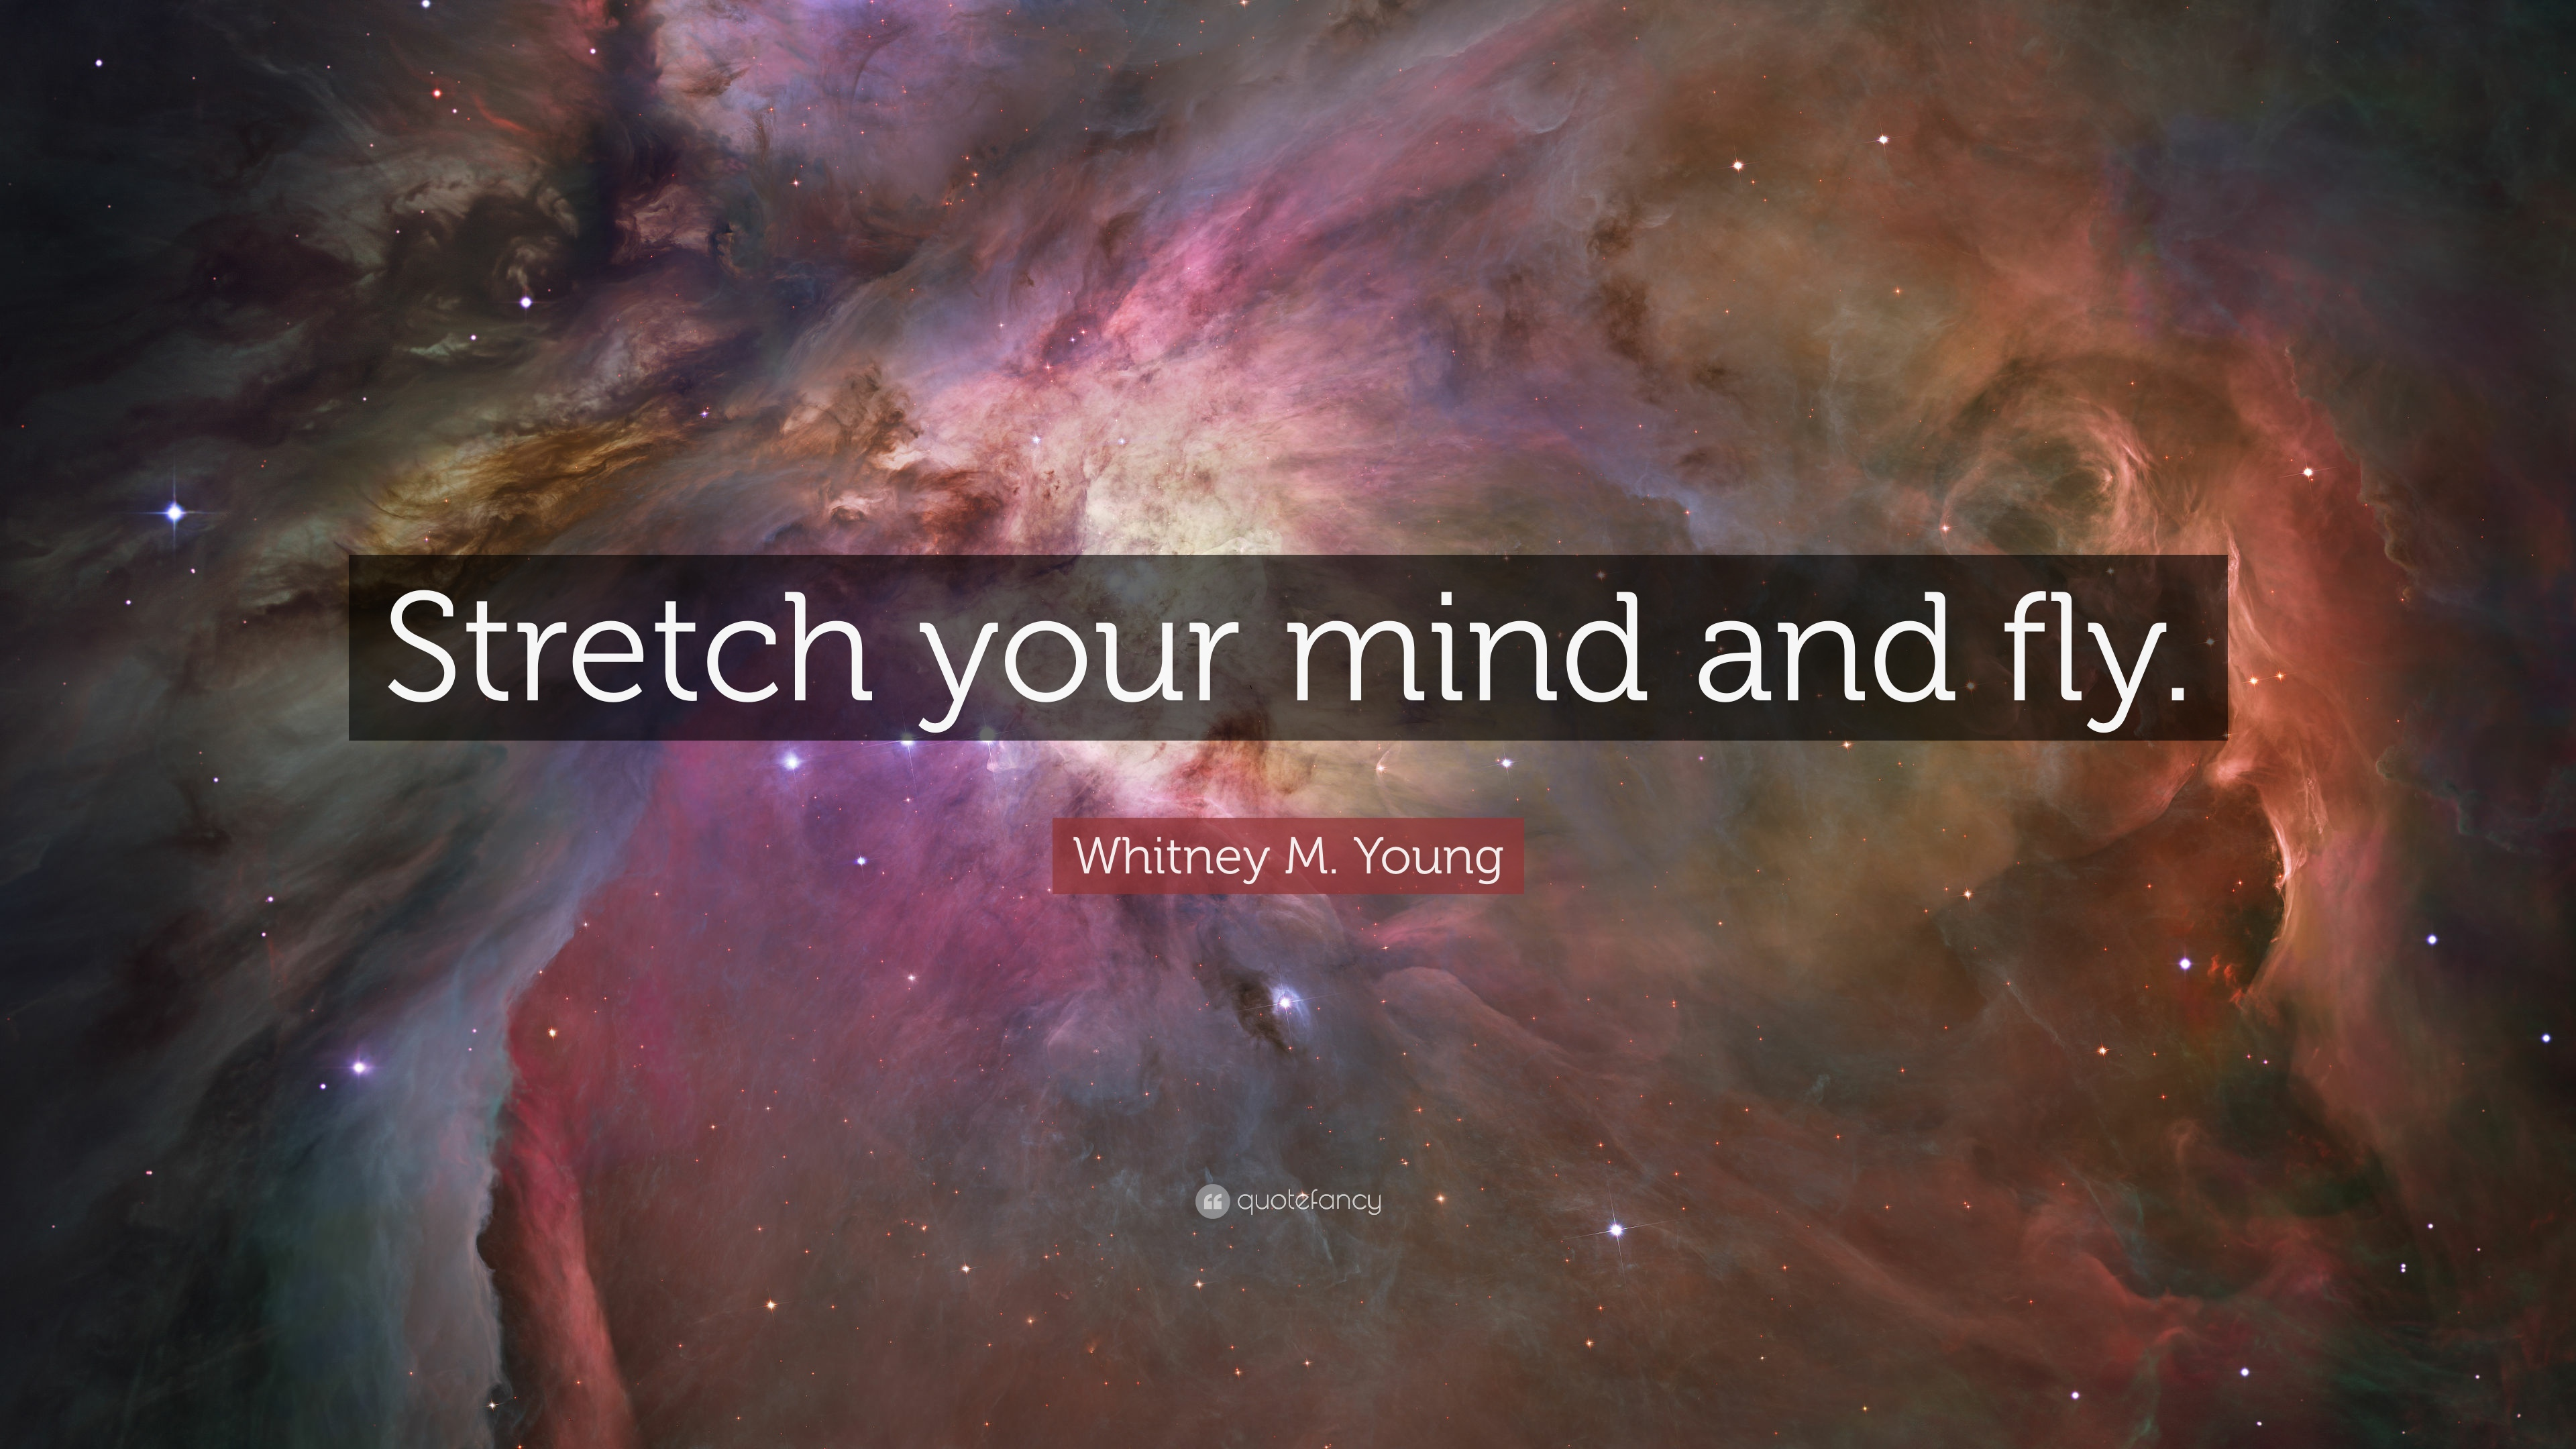 Whitney M Young Quote Stretch Your Mind And Fly 10 Wallpapers